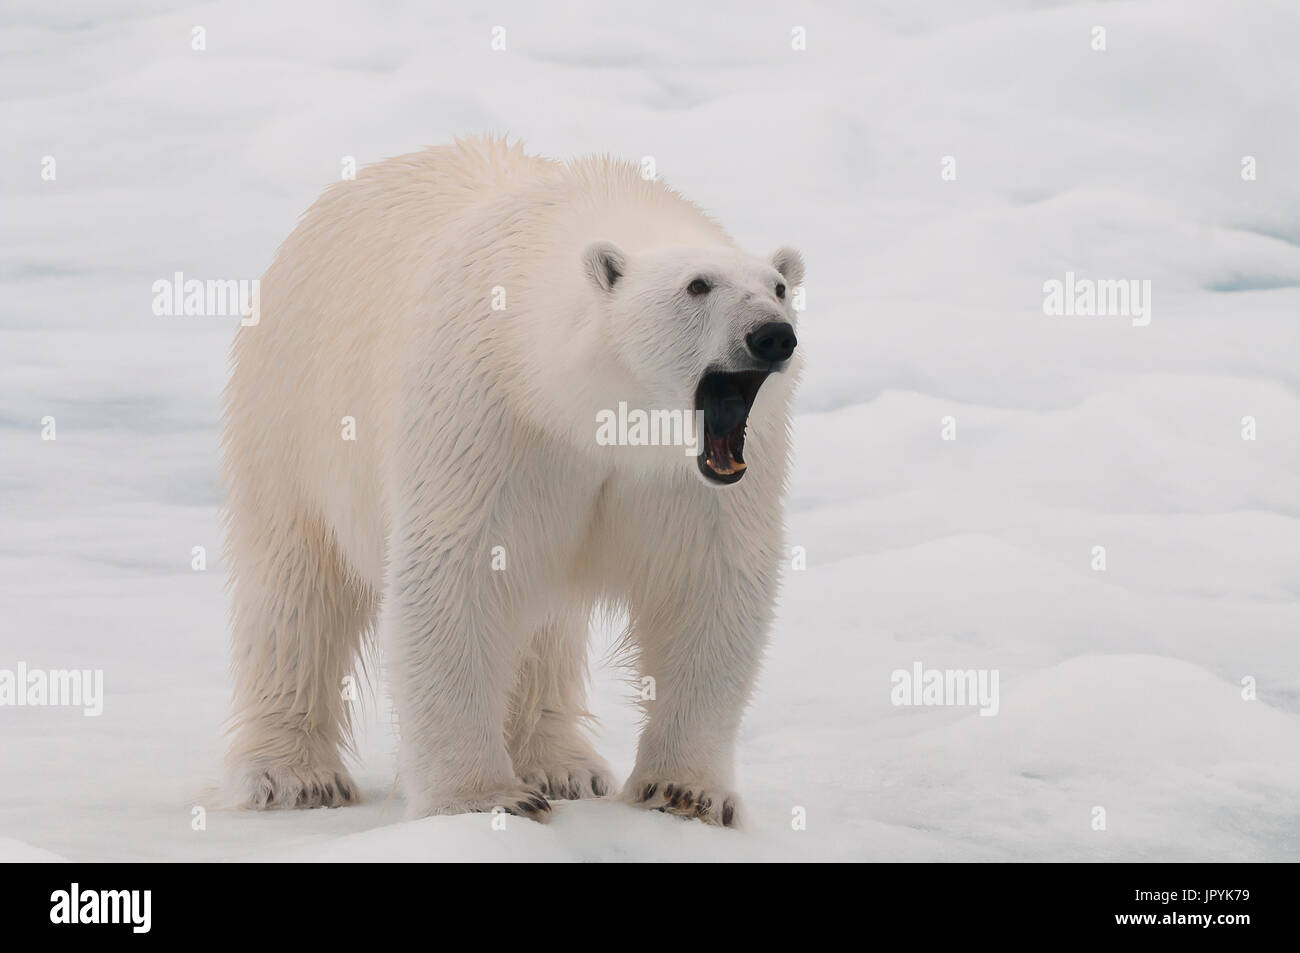 Polar bear yawning on ice - Northern Spitsbergen - Stock Image